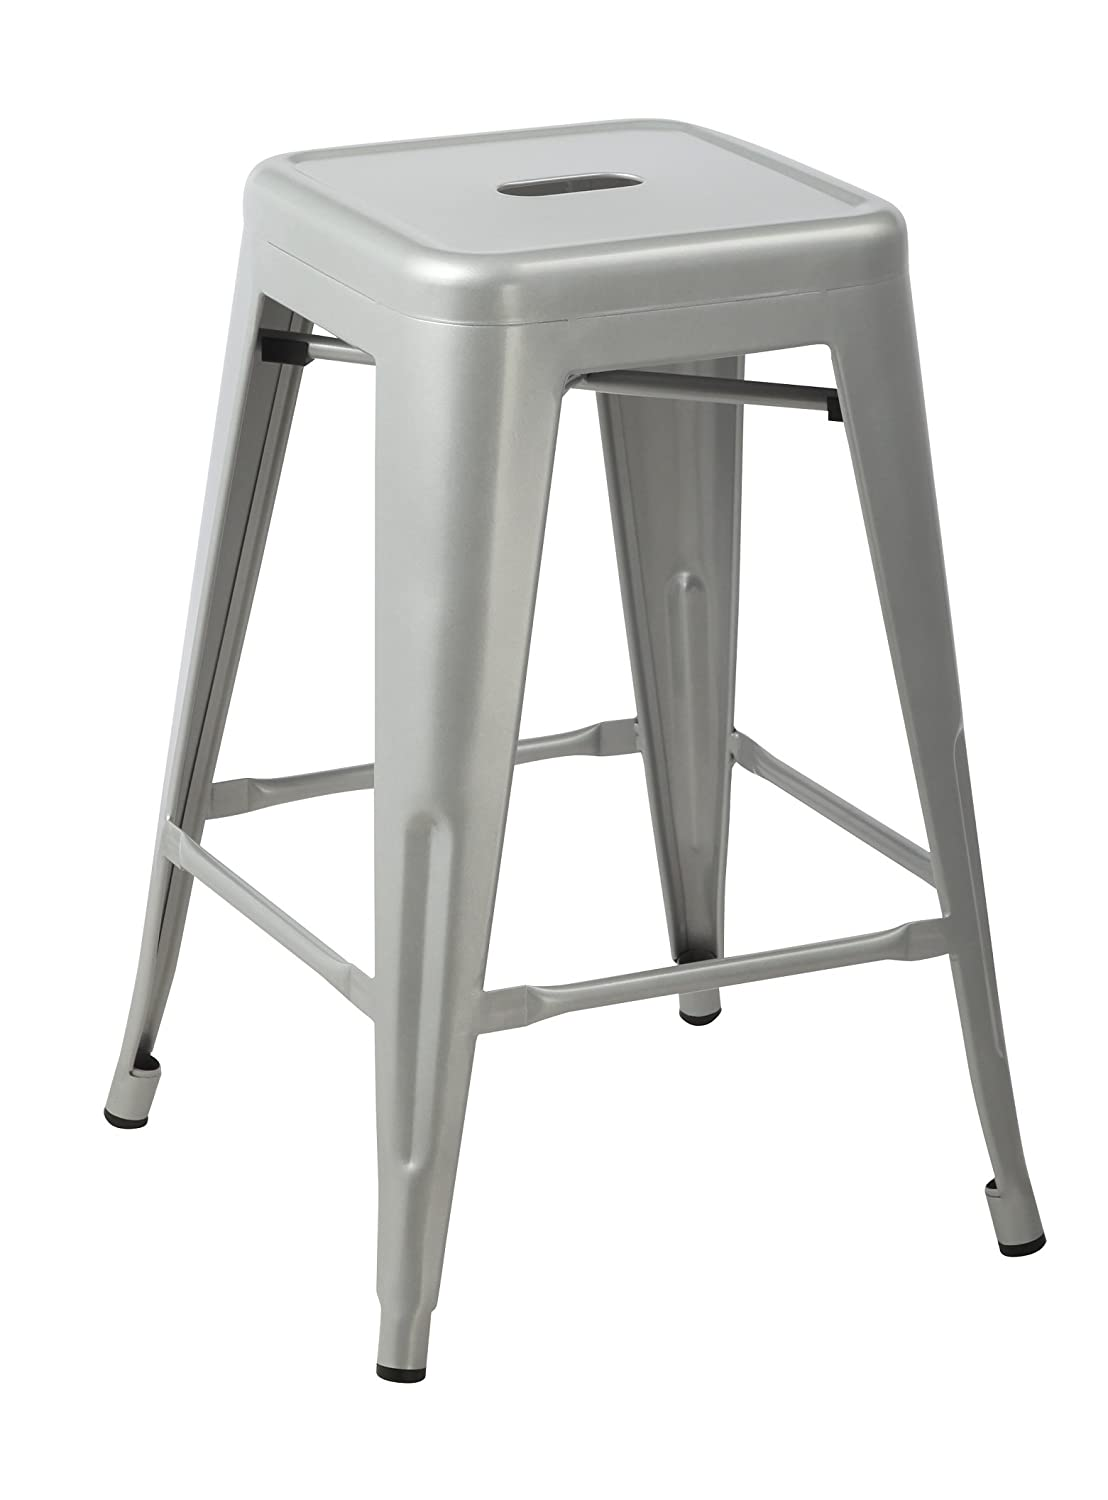 bar counter swivel product industrial back size architects detail stool architect s iron wood stools with full